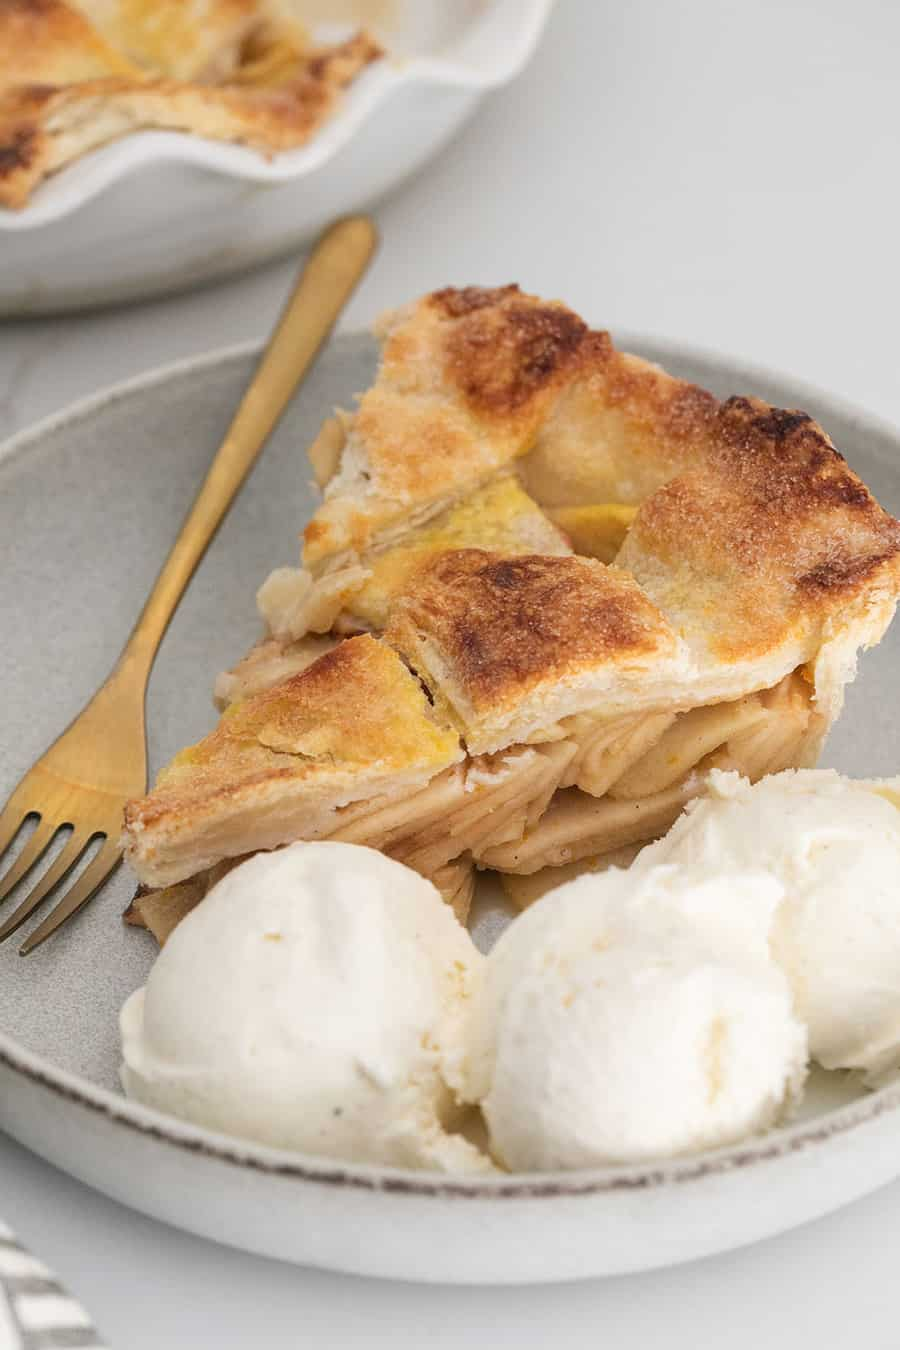 Ice cream and apple pie with thinly sliced apples